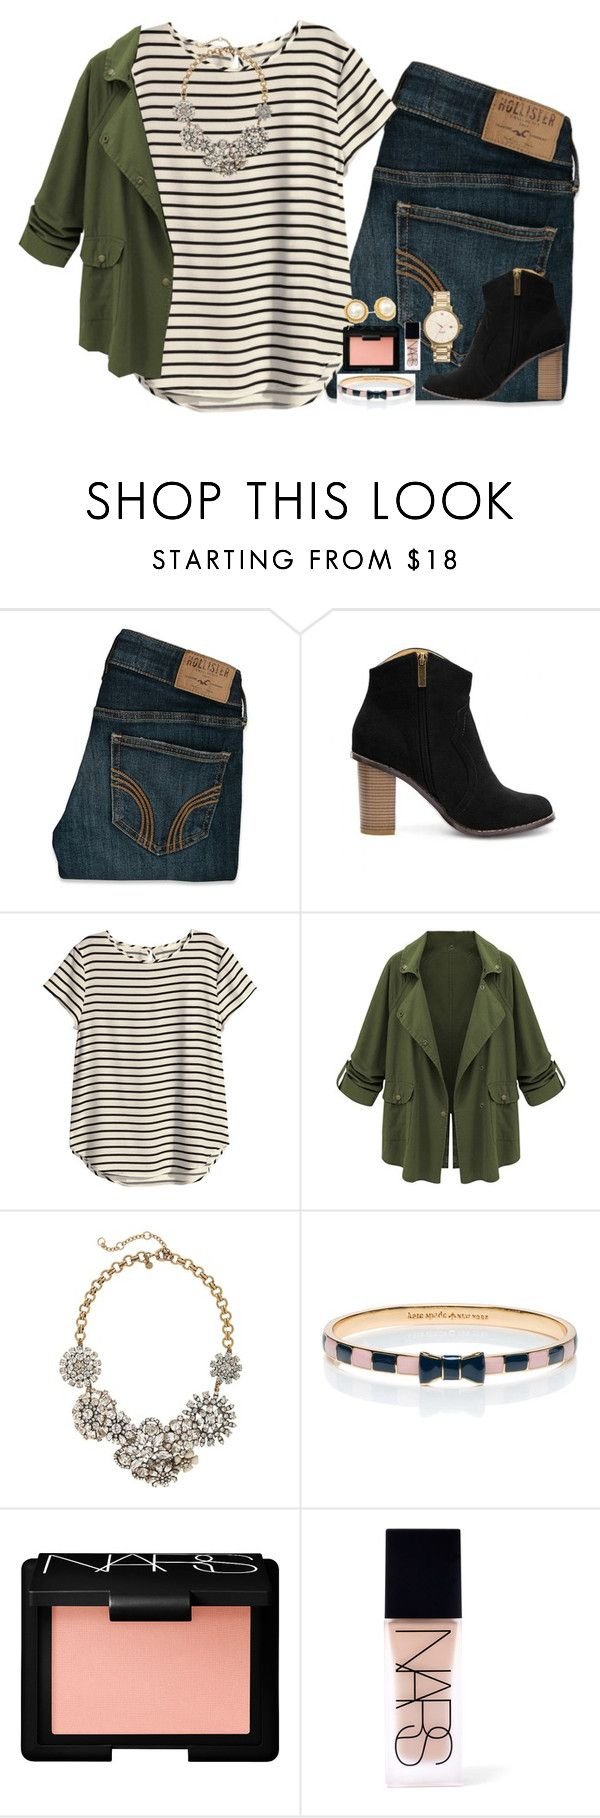 """yes or no? "" by itsaddyxoxo ❤ liked on Polyvore featuring Hollister Co., H&M, J.Crew, Kate Spade and NARS Cosmetics"